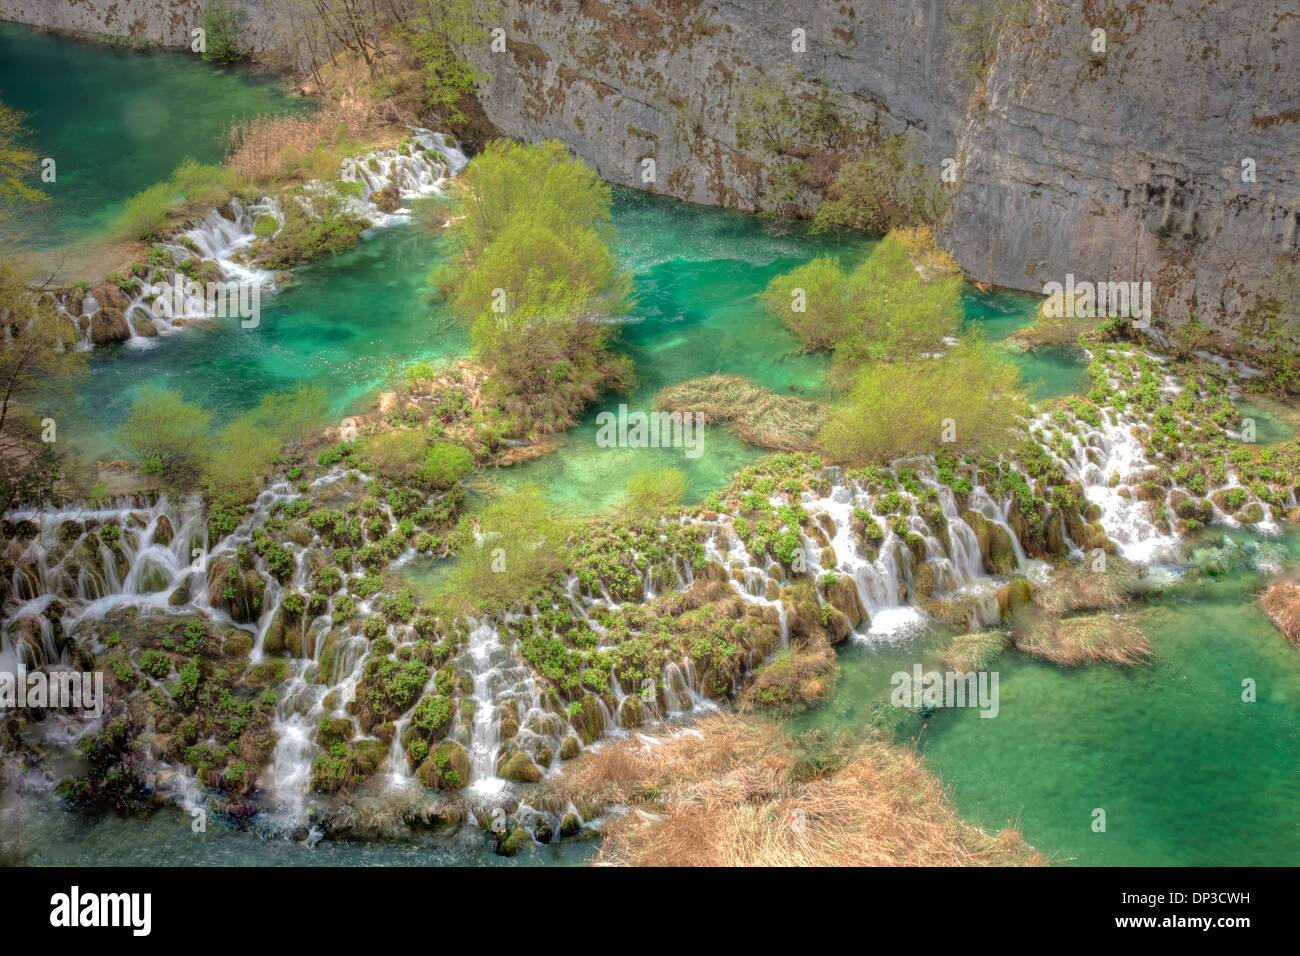 Blue-green waterfalls. Plitvice Lakes National Park, Croatia Water-colored from limestone and travertine - Stock Image